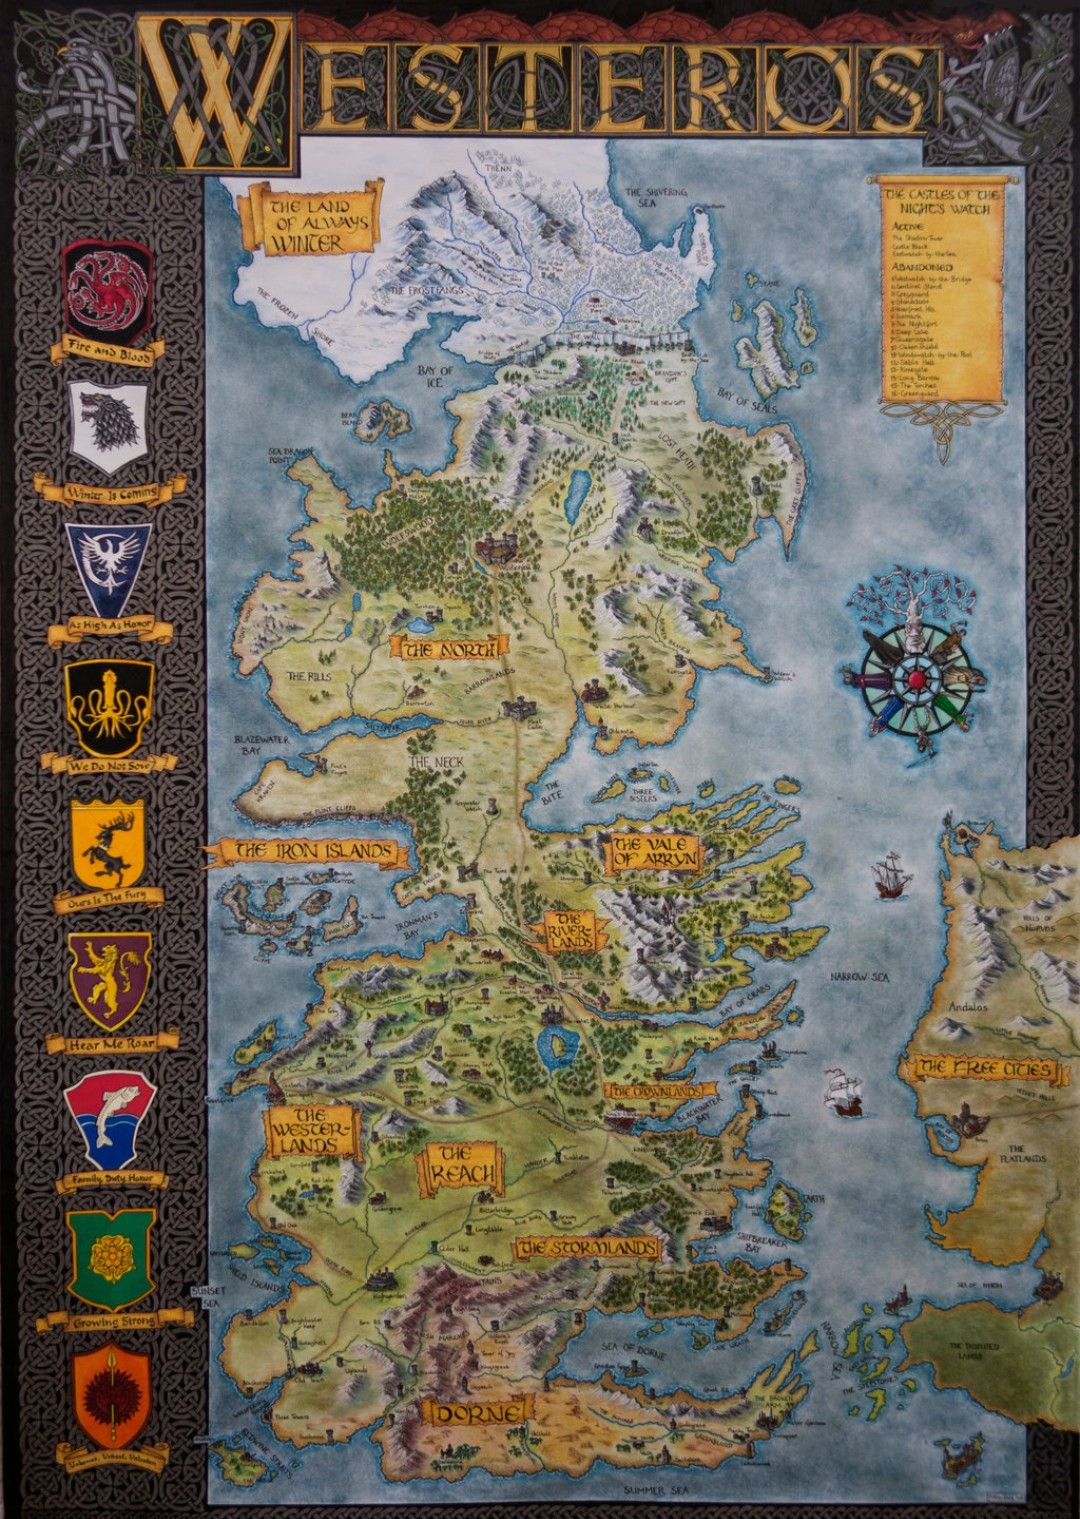 Pin by Dilay Aydoğdu on A Song of Ice and Fire in 2019 ... Game Of Thrones Map Hbo on game of thrones maps and families, true detective hbo, game of thrones hbo series, deadwood hbo, game of thrones hbo store, game of thrones maps pdf,